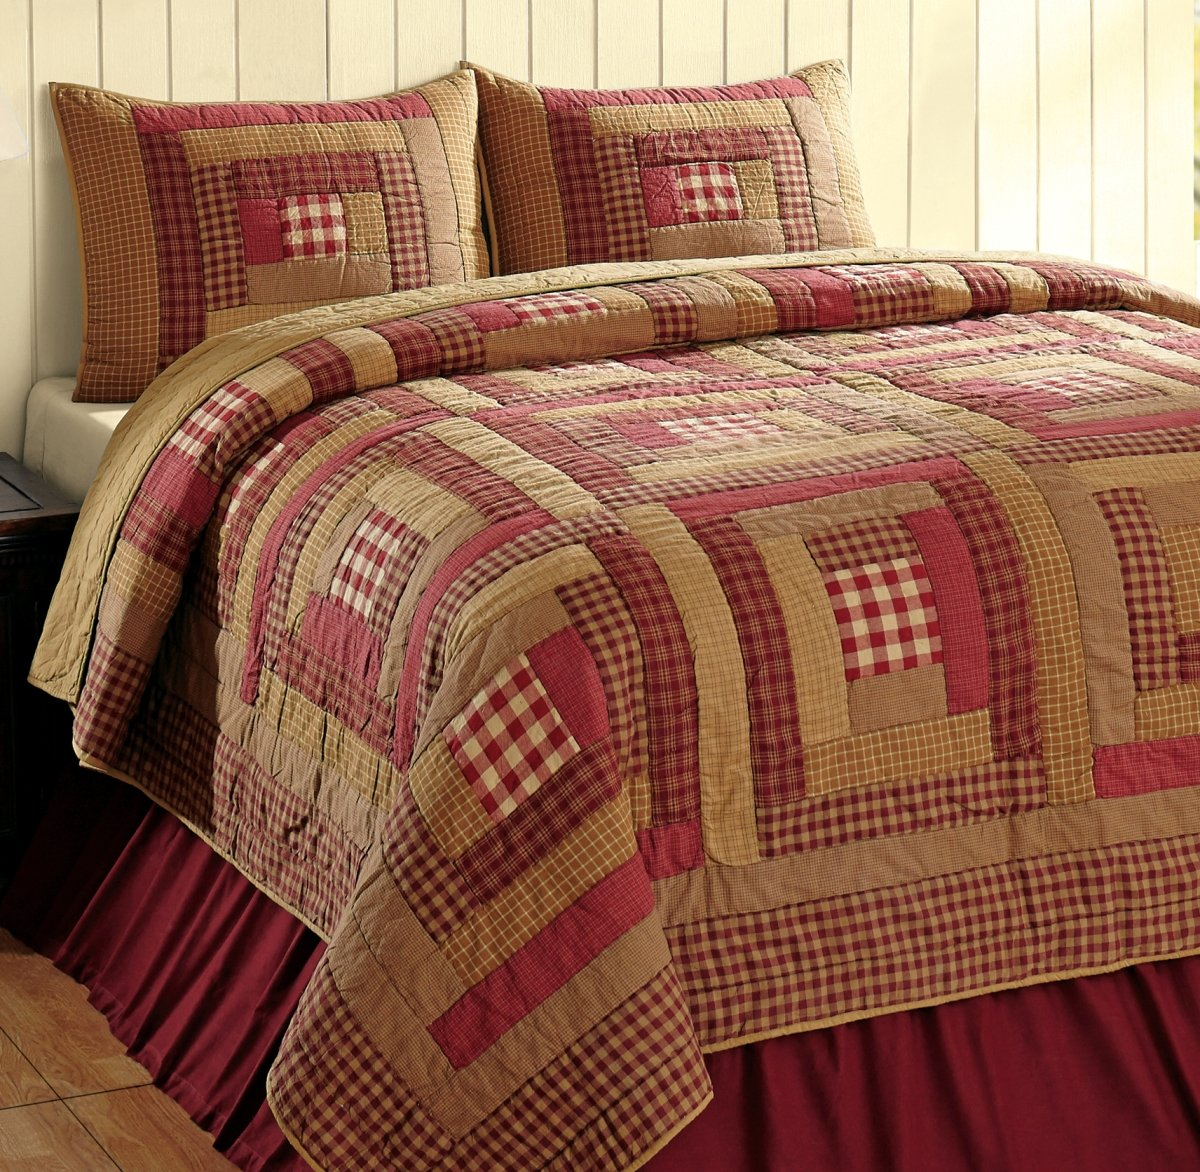 Goldie Wine and Khaki Tan Log Cabin 3 Piece King Country Quilt Set by VHC Brands